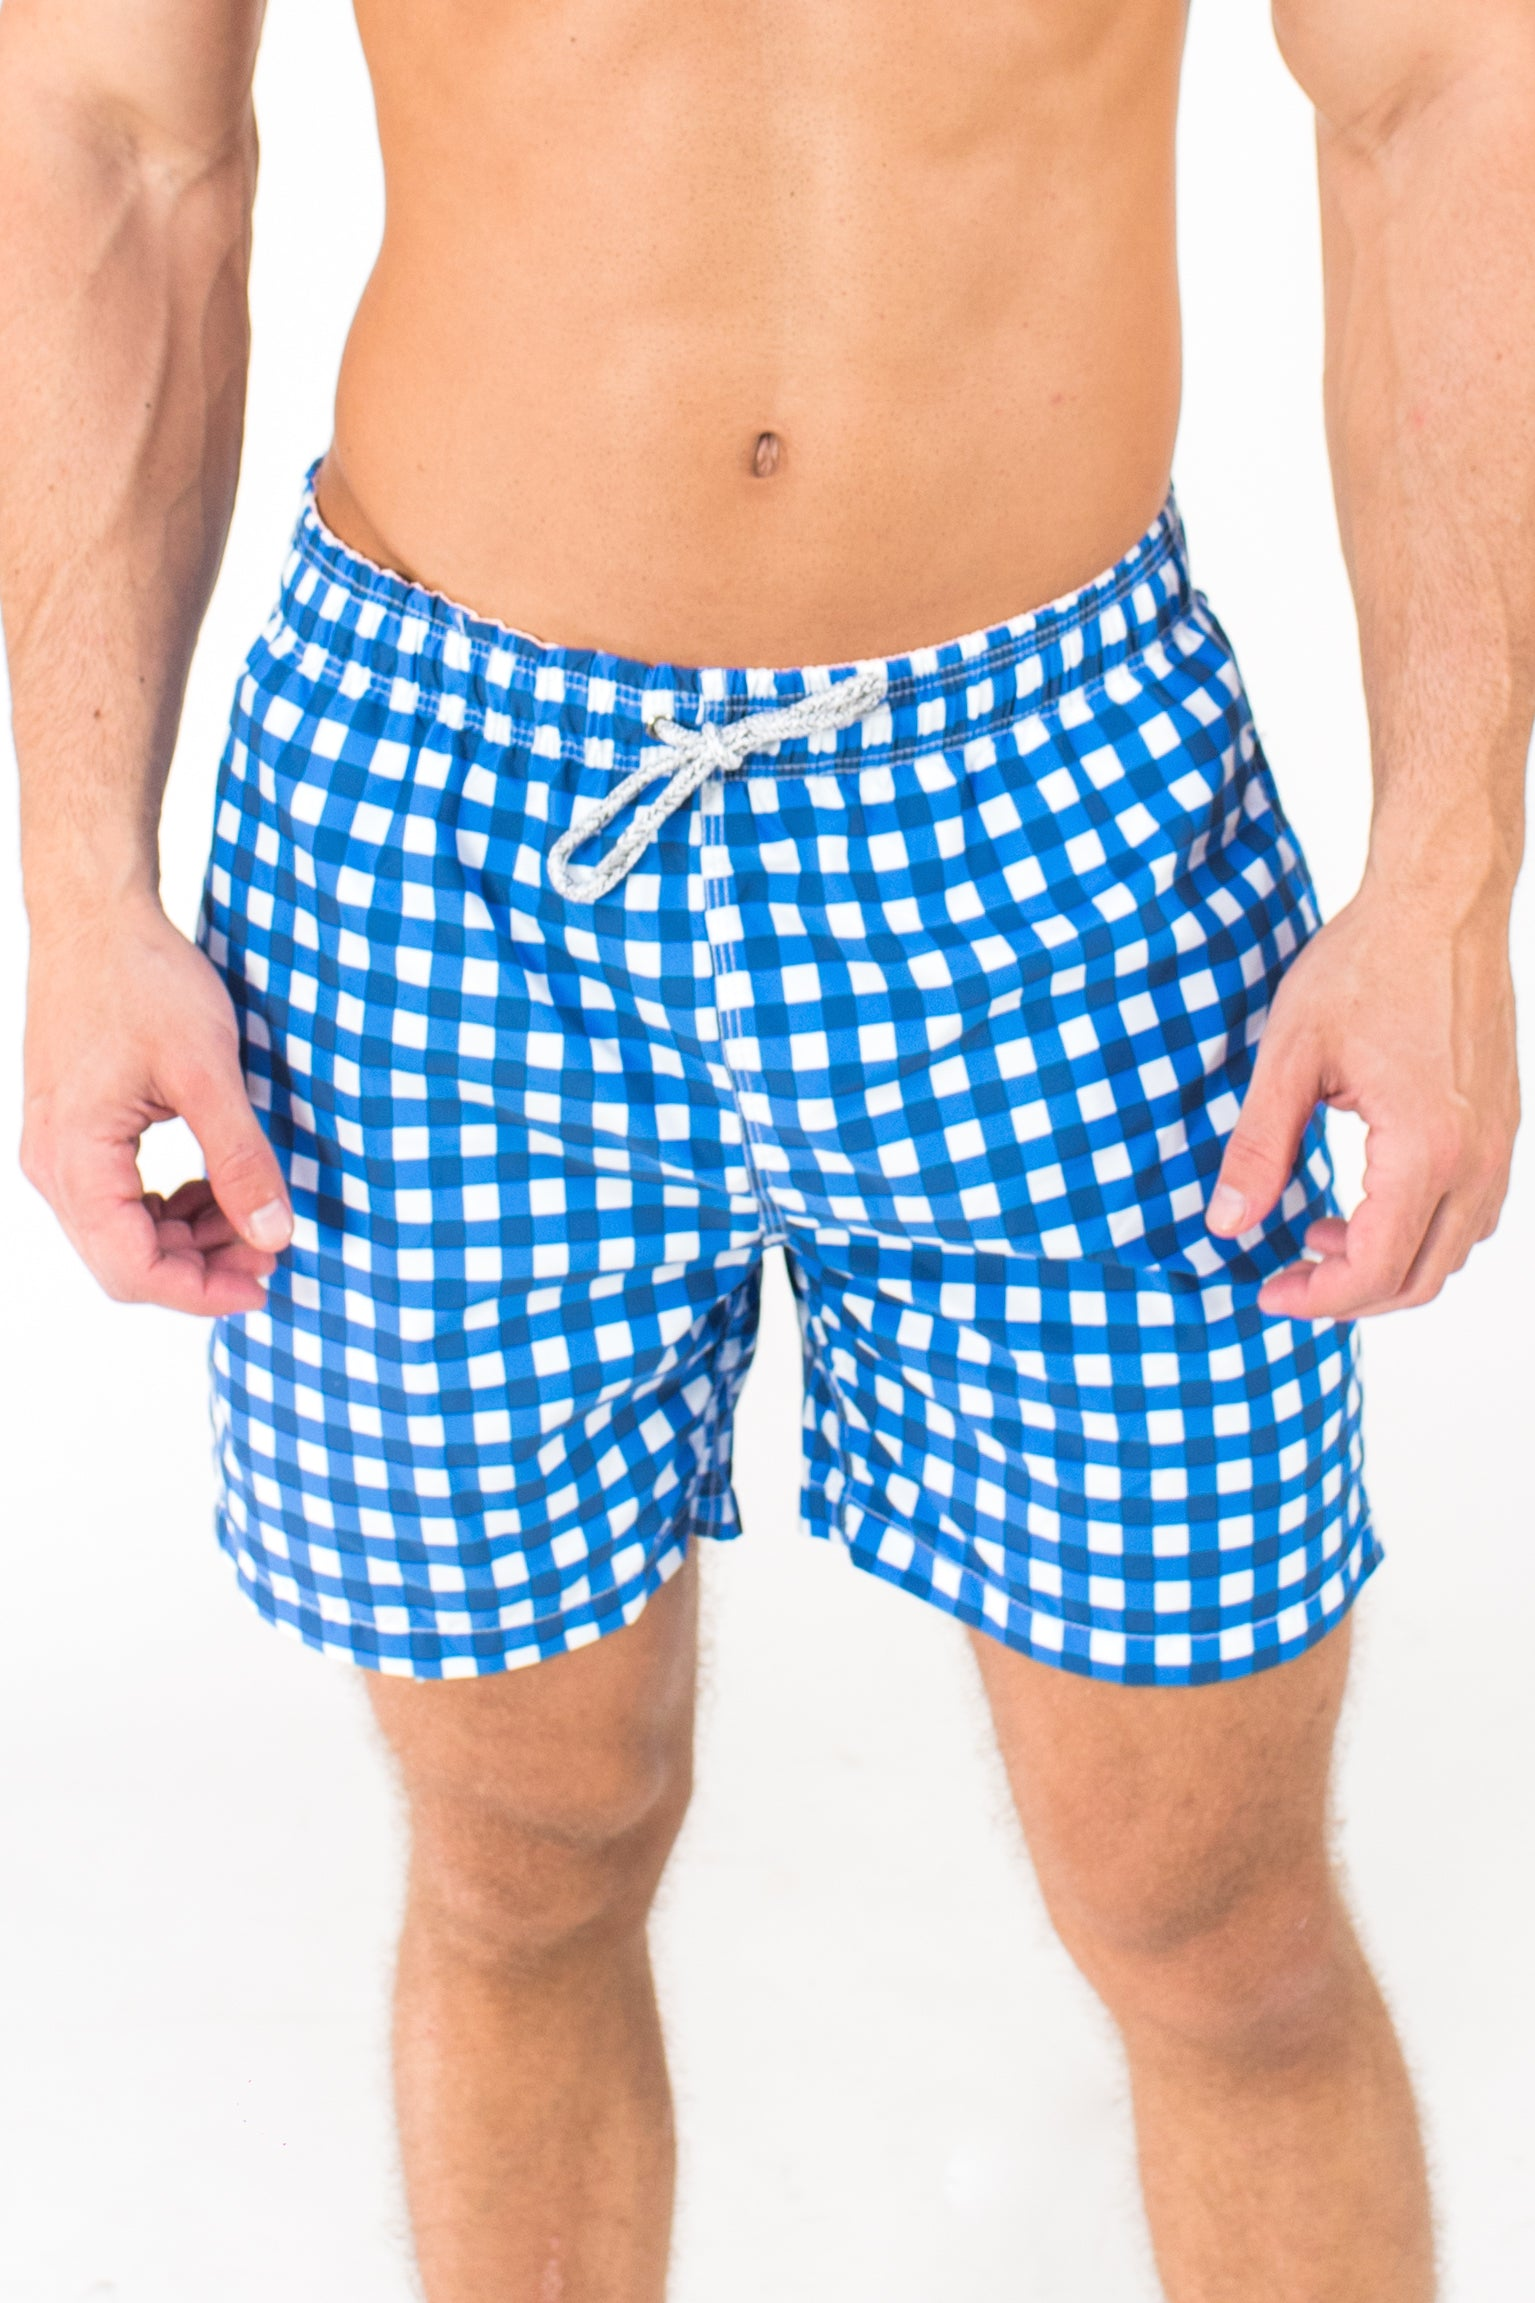 030d631df1 Men's Classic Gingham Swim Trunk - Navy/White